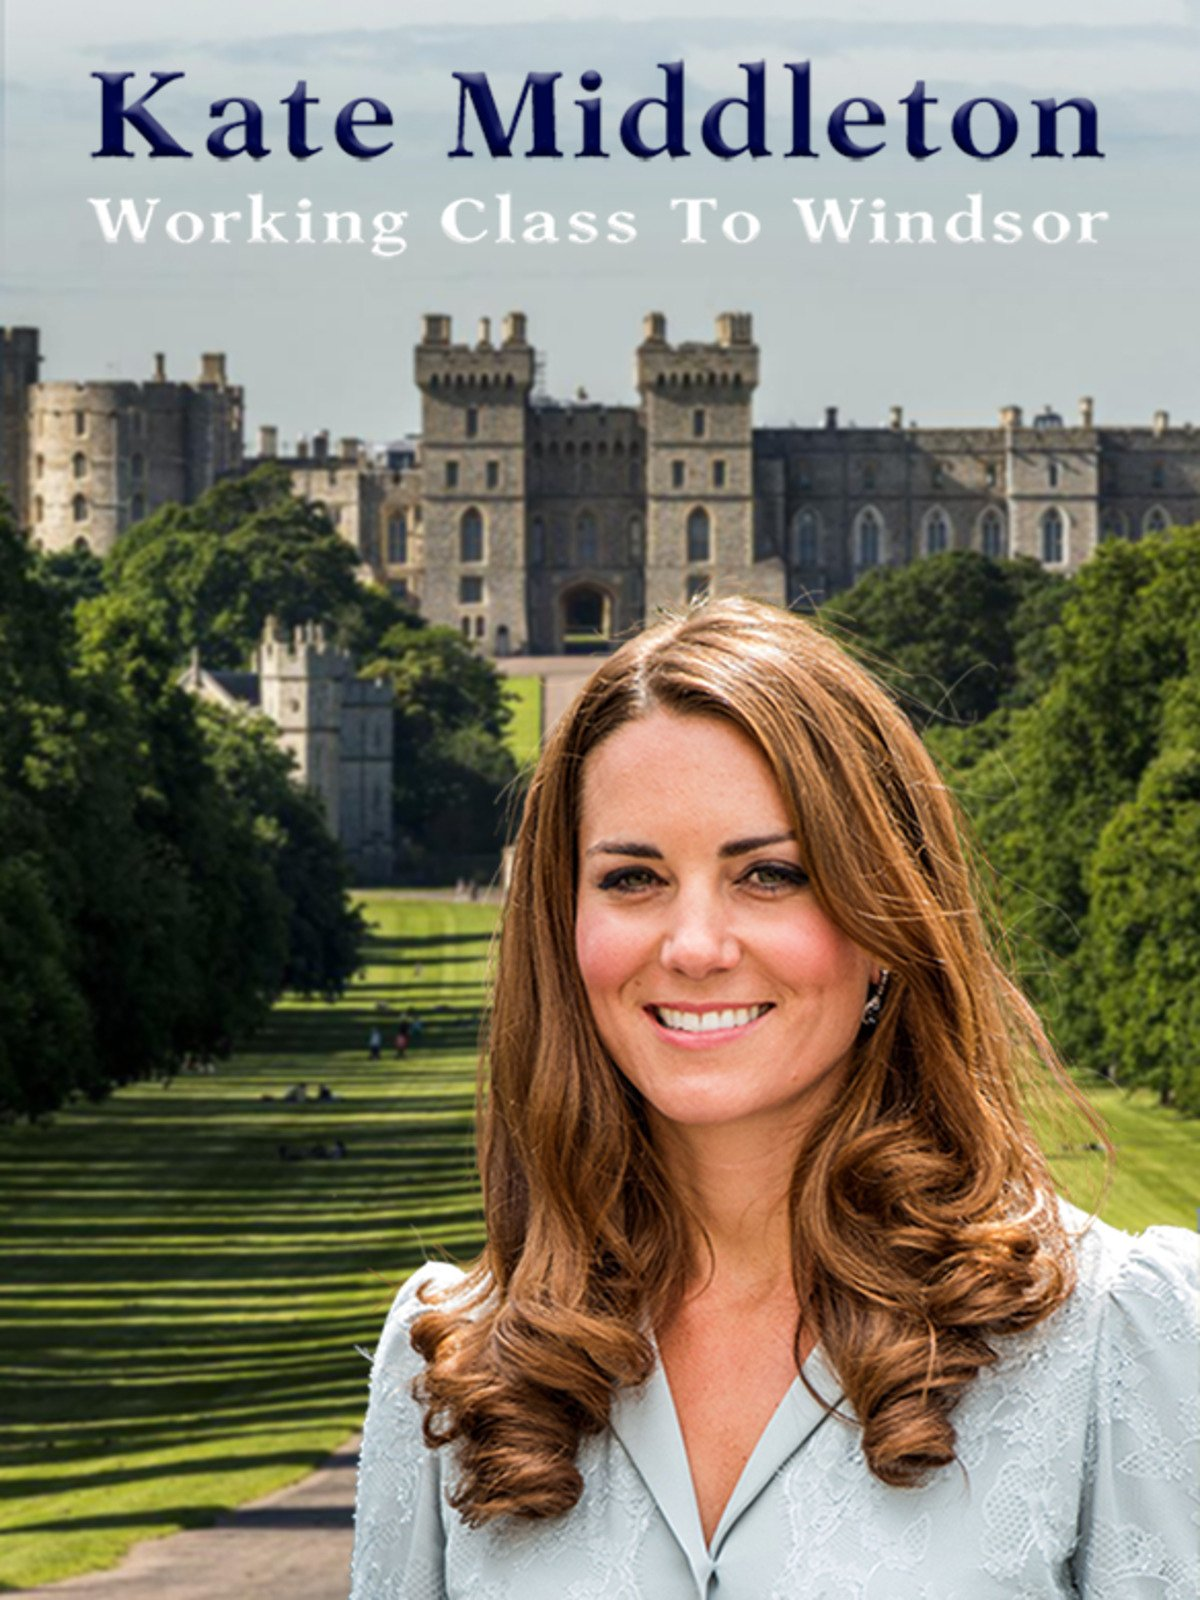 Kate Middleton: Working Class to Windsor